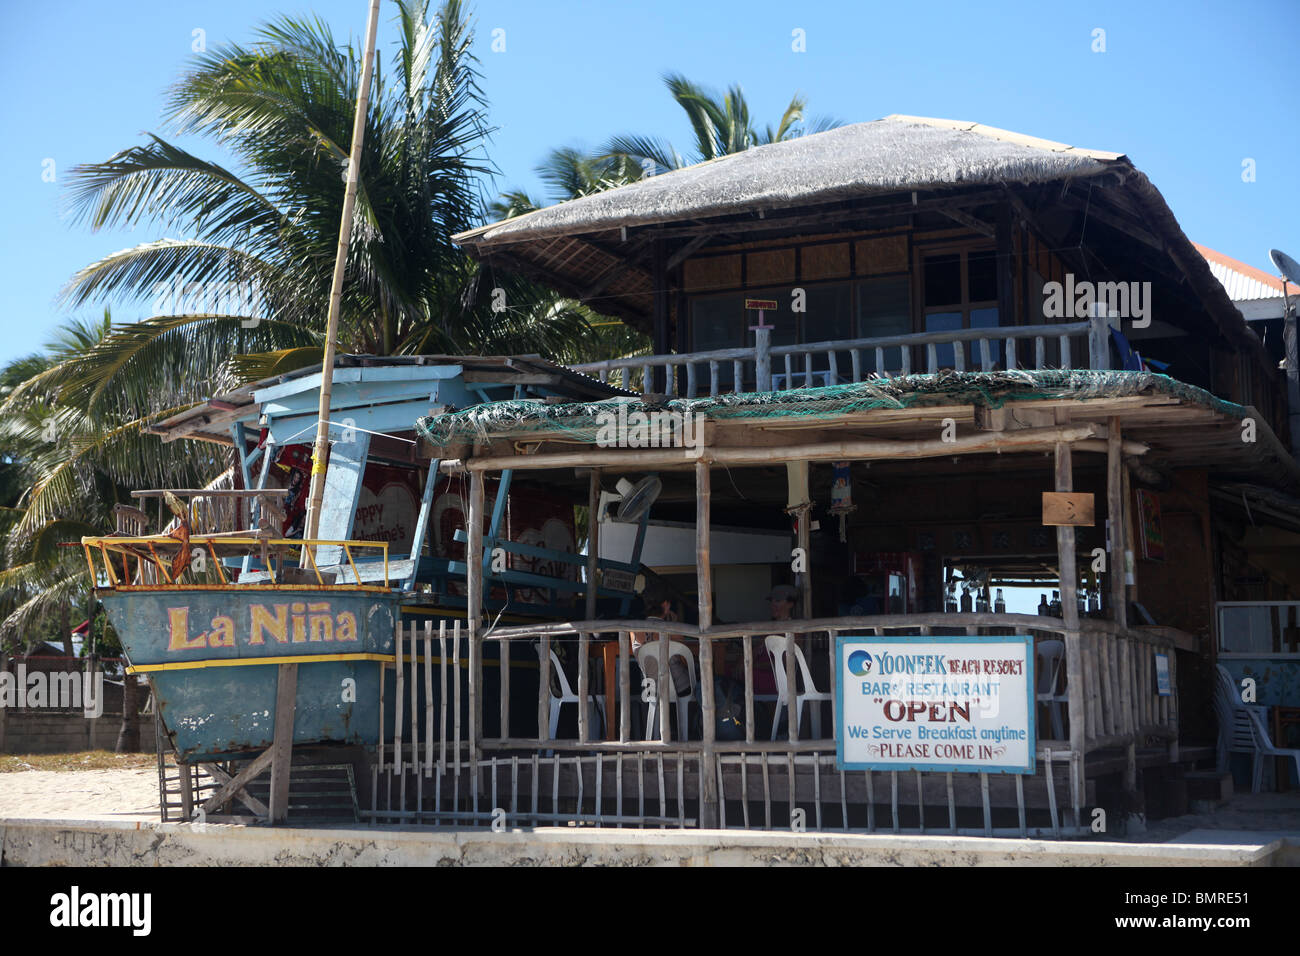 View of the Bar and Restaurant of the Yooneek Beach Resort in Sante Fe, Cebu Province in the Philippines. - Stock Image